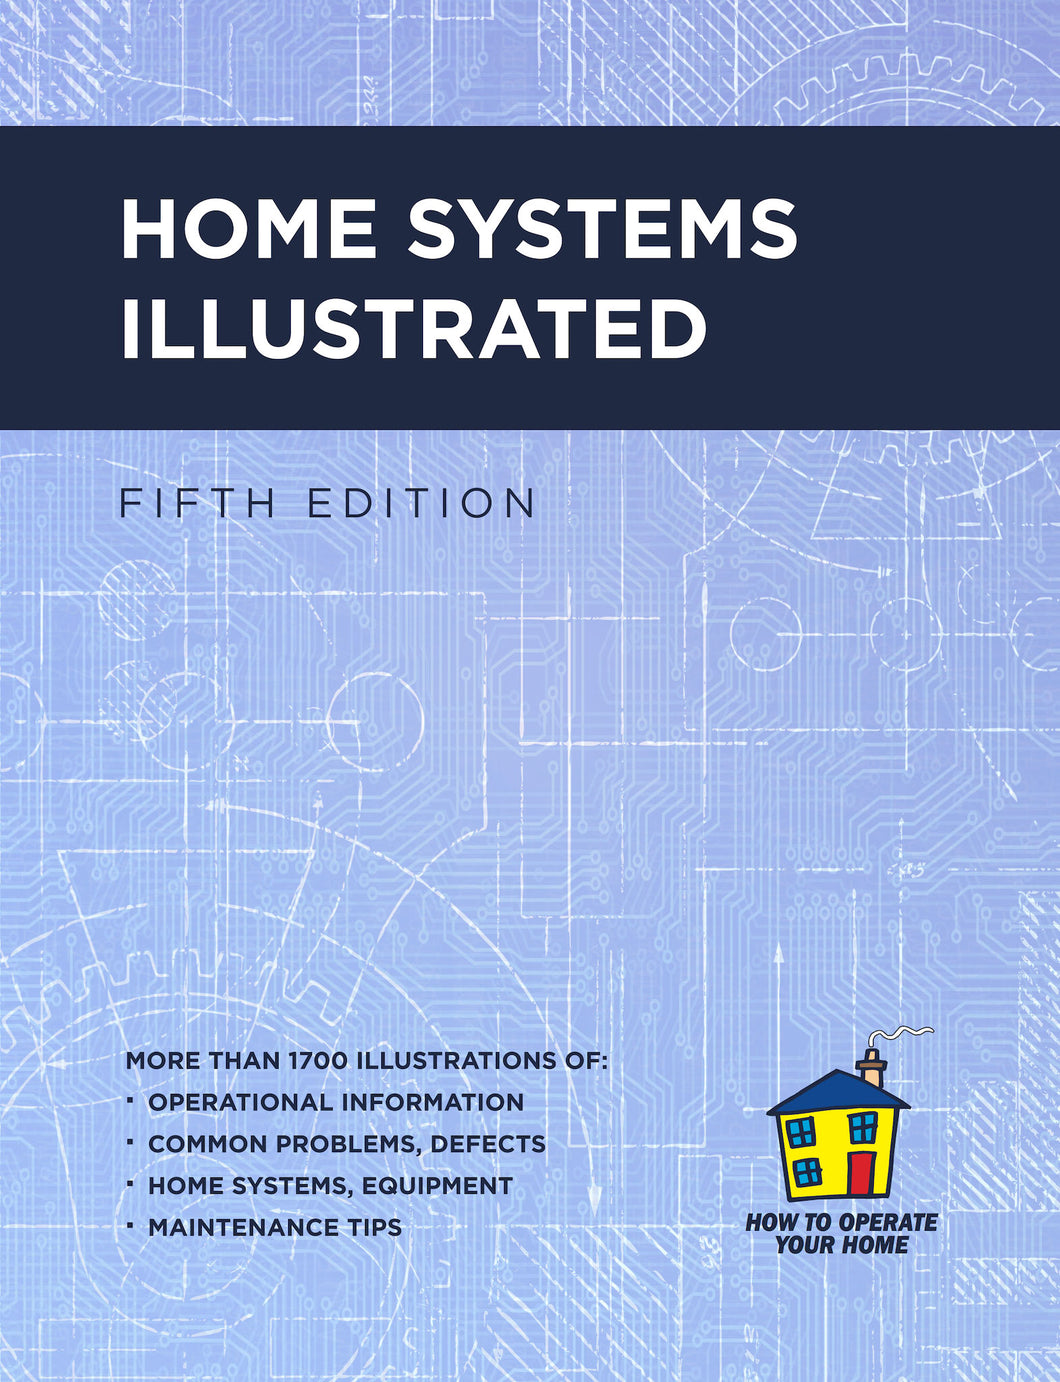 Home Systems Illustrated - Line Art Collection (Shipped - Image Pack and Reference Book)